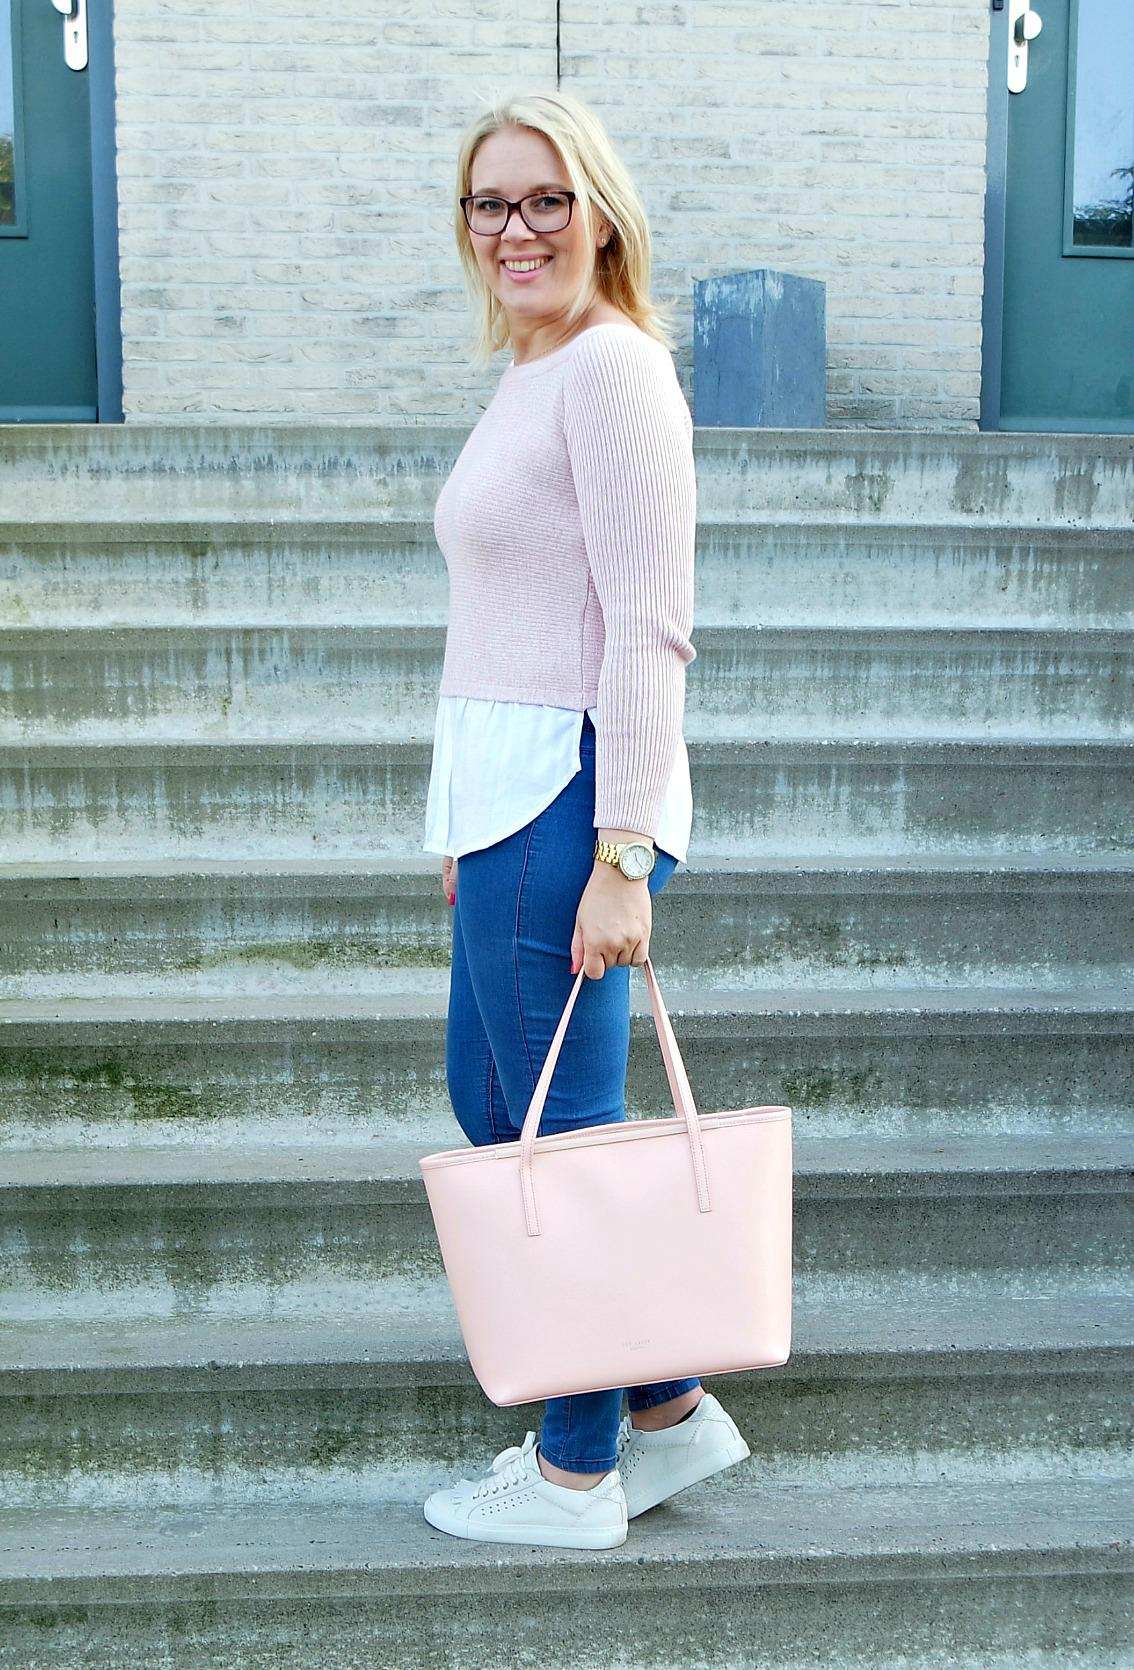 outfit Pink lover New Ted baker bag, via vai schoenen, River Island Top, Happiness boutique ketting 2